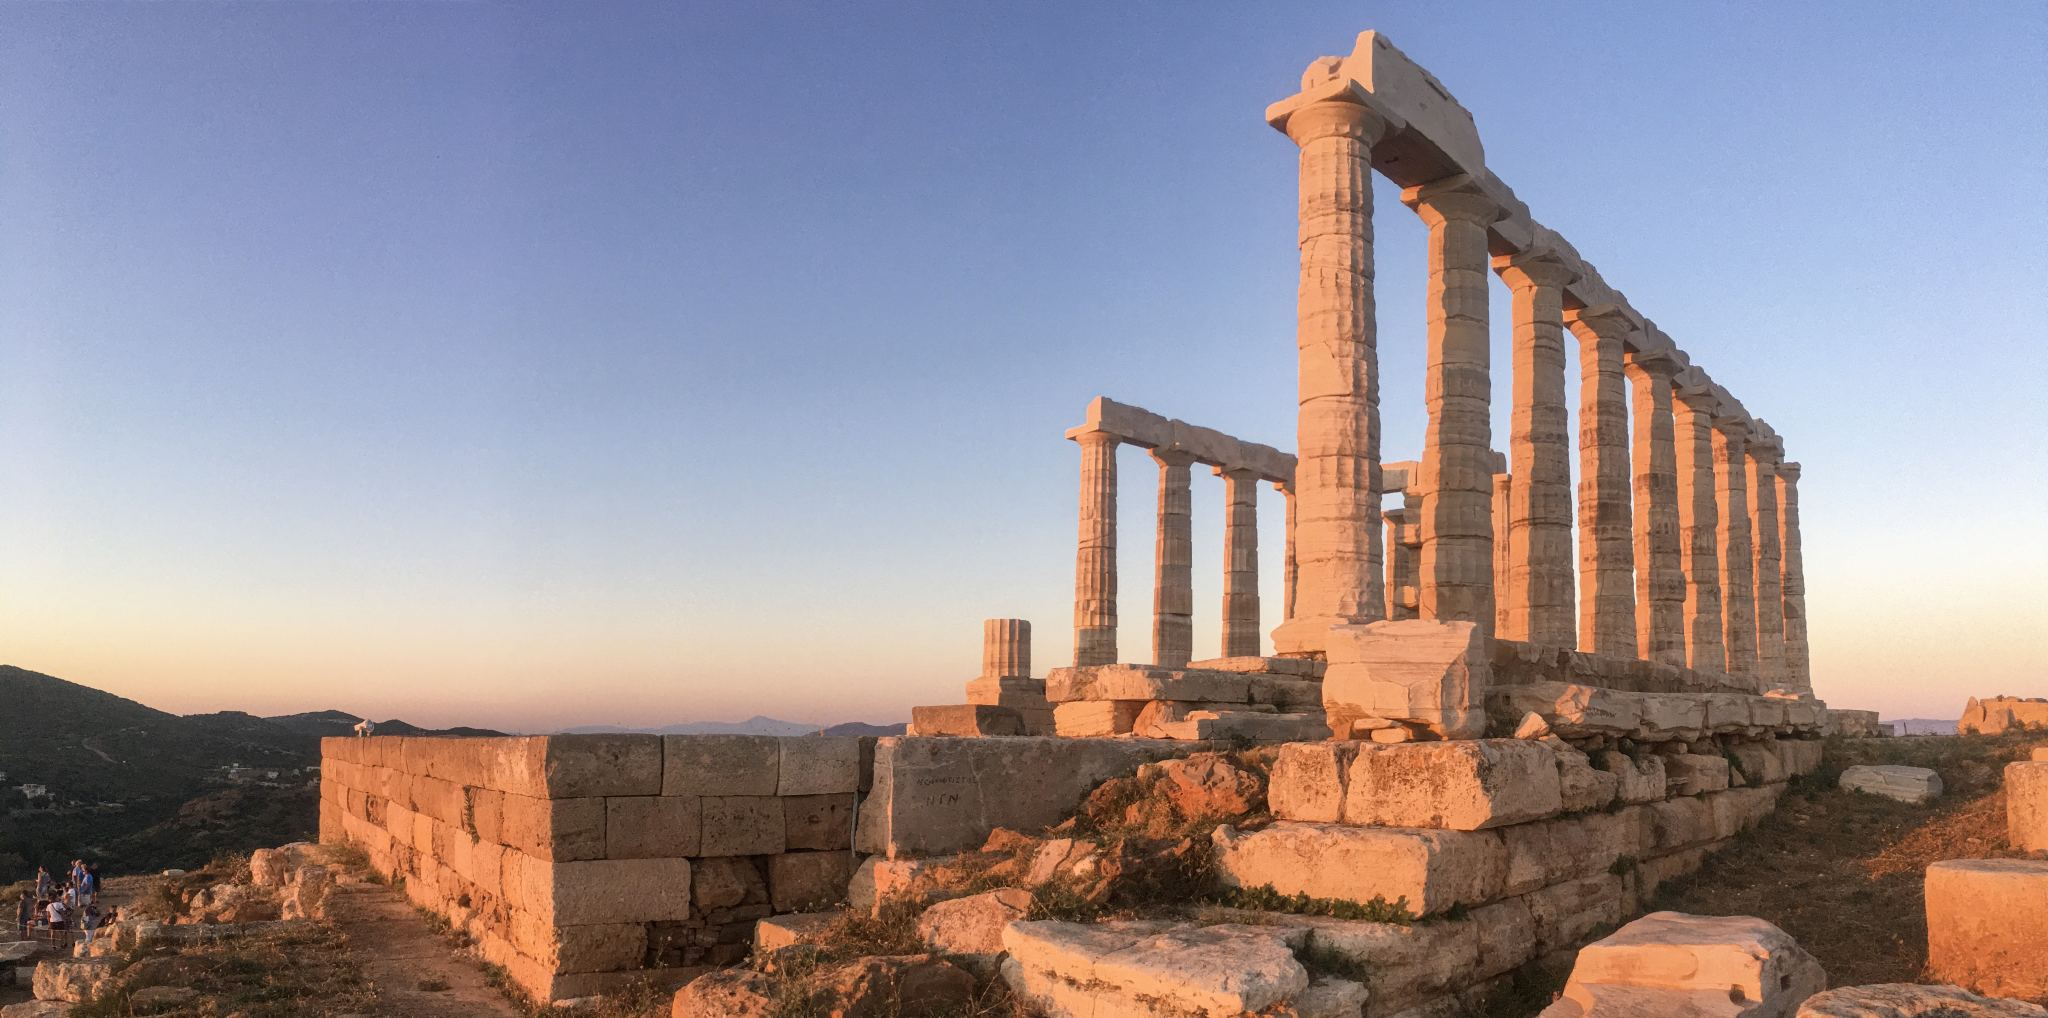 33 Things To Do In Attica, Greece